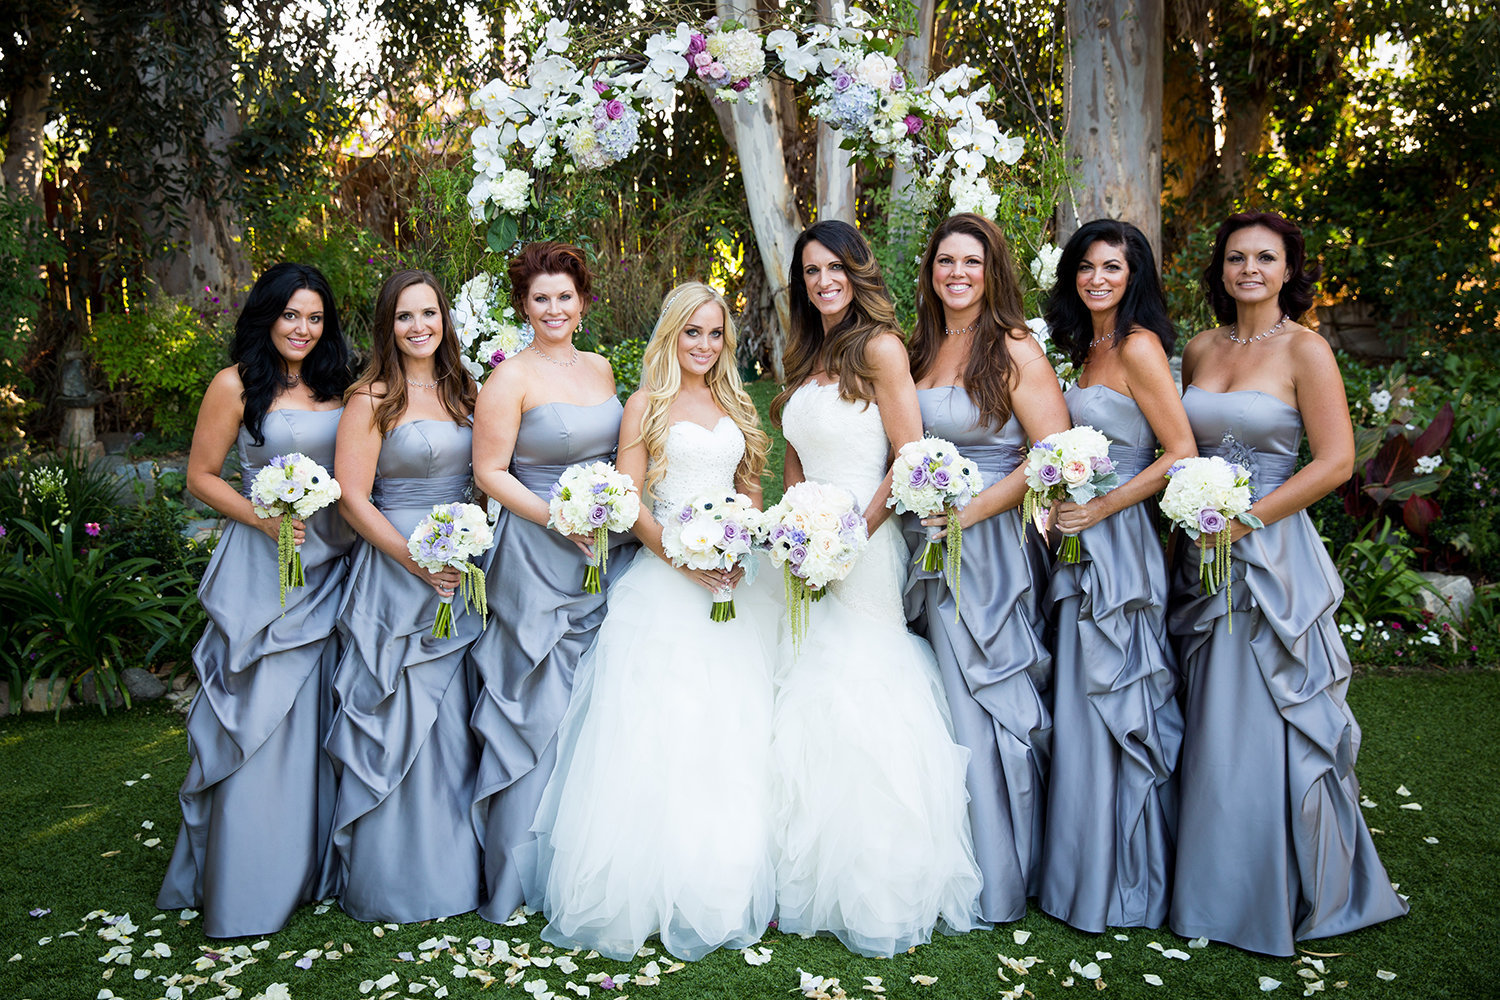 Wedding party along with the beautiful brides at Twin Oaks Garden Estate in San Diego